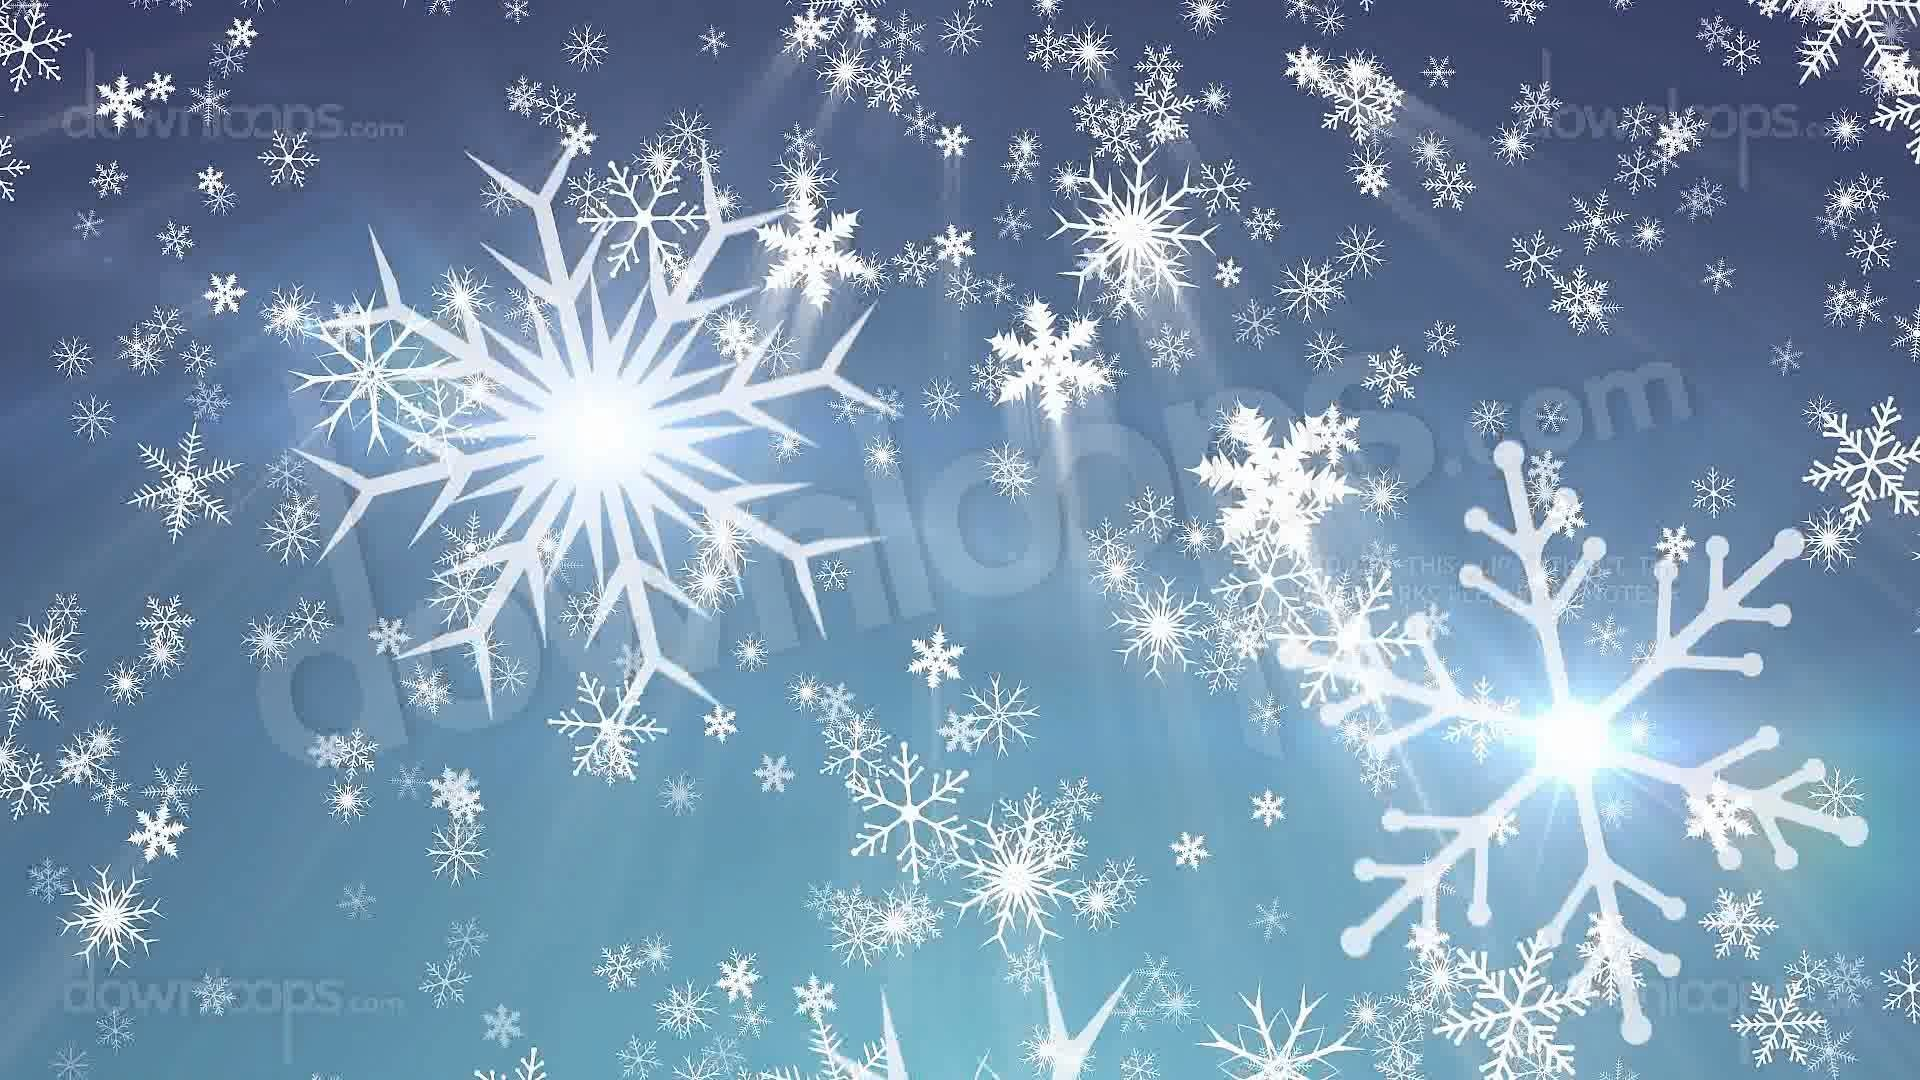 Free Animated Desktop Wallpaper Like Snow Falling On Background Christmas Wallpaper Moving Snow Falling 72 Images